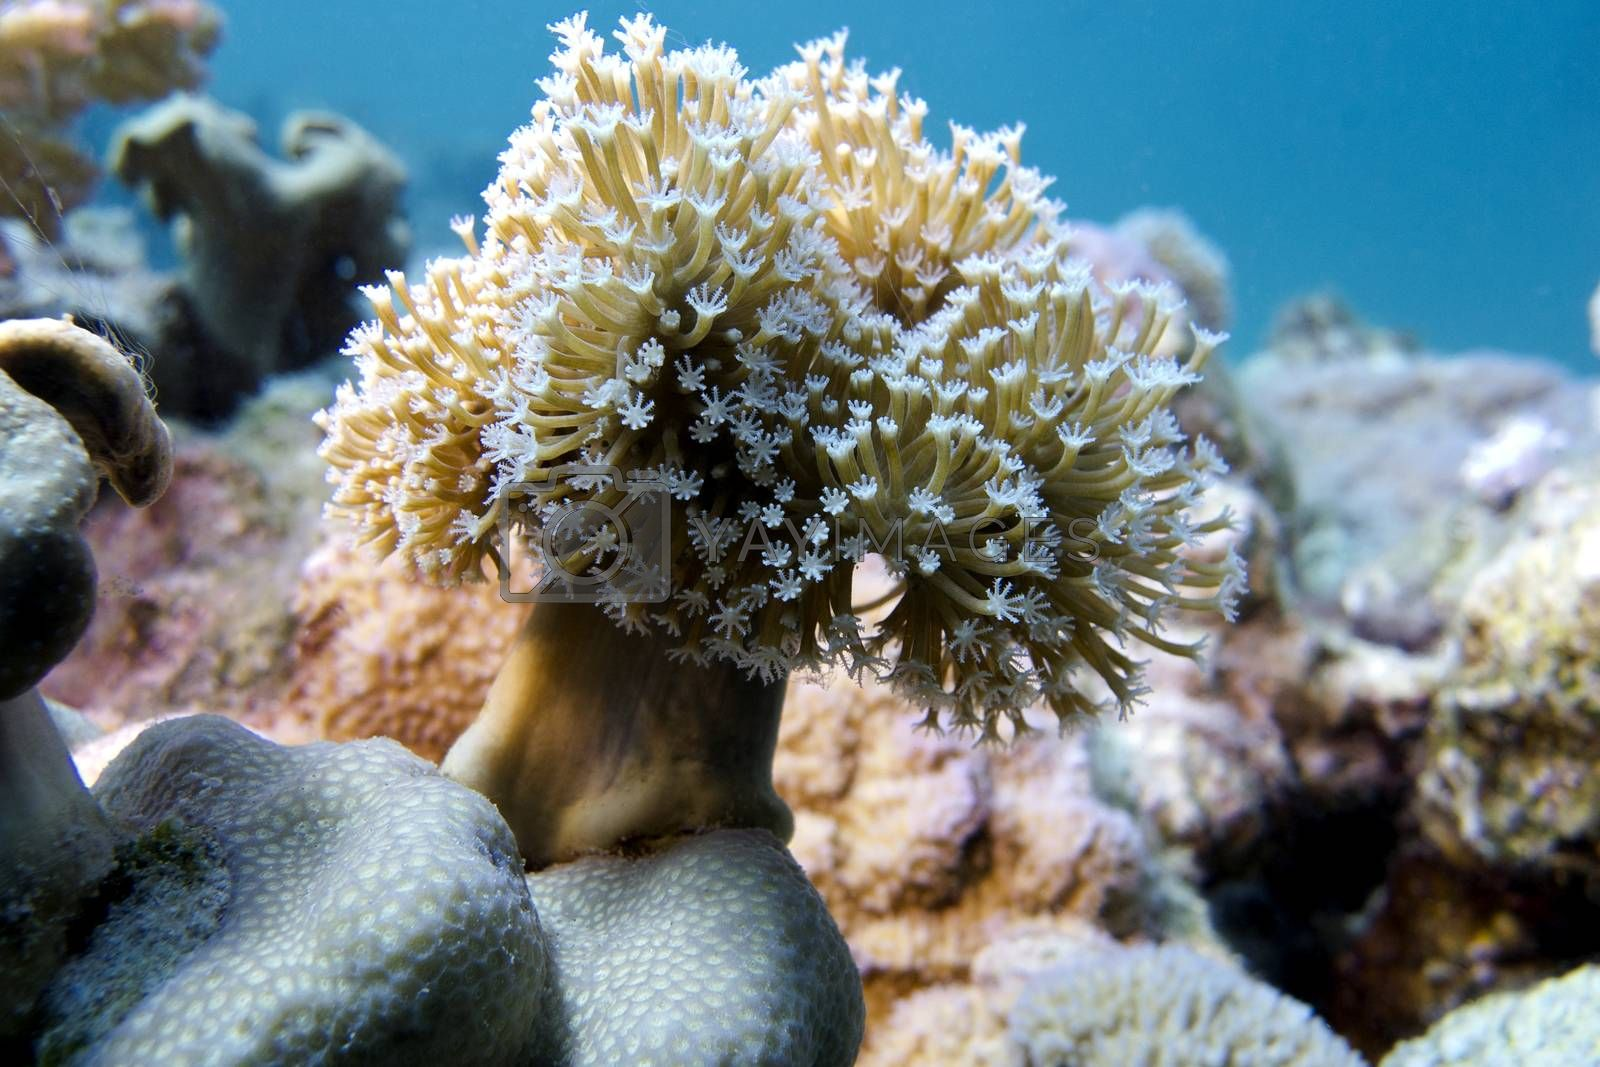 Royalty free image of coral reef with soft coral at the bottom of tropical sea by mychadre77